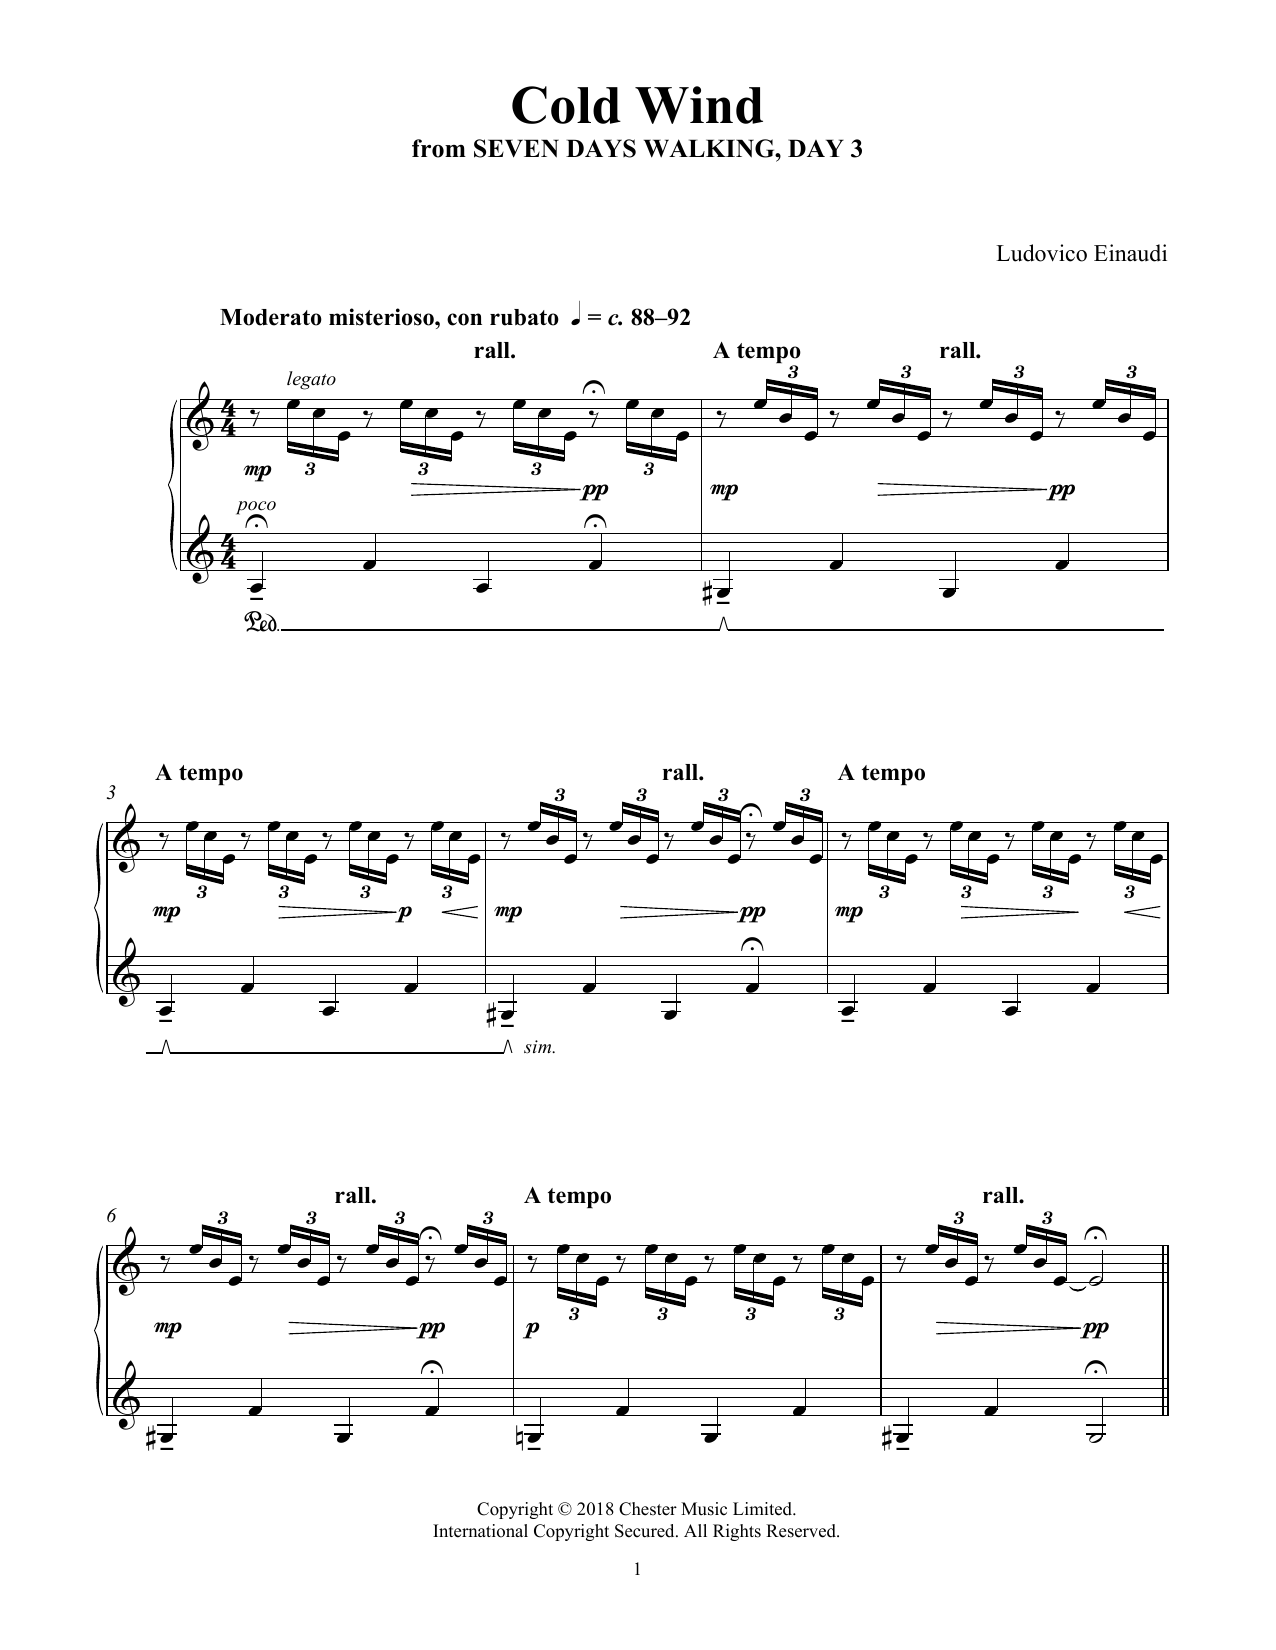 Ludovico Einaudi Cold Wind (from Seven Days Walking: Day 3) sheet music notes and chords. Download Printable PDF.